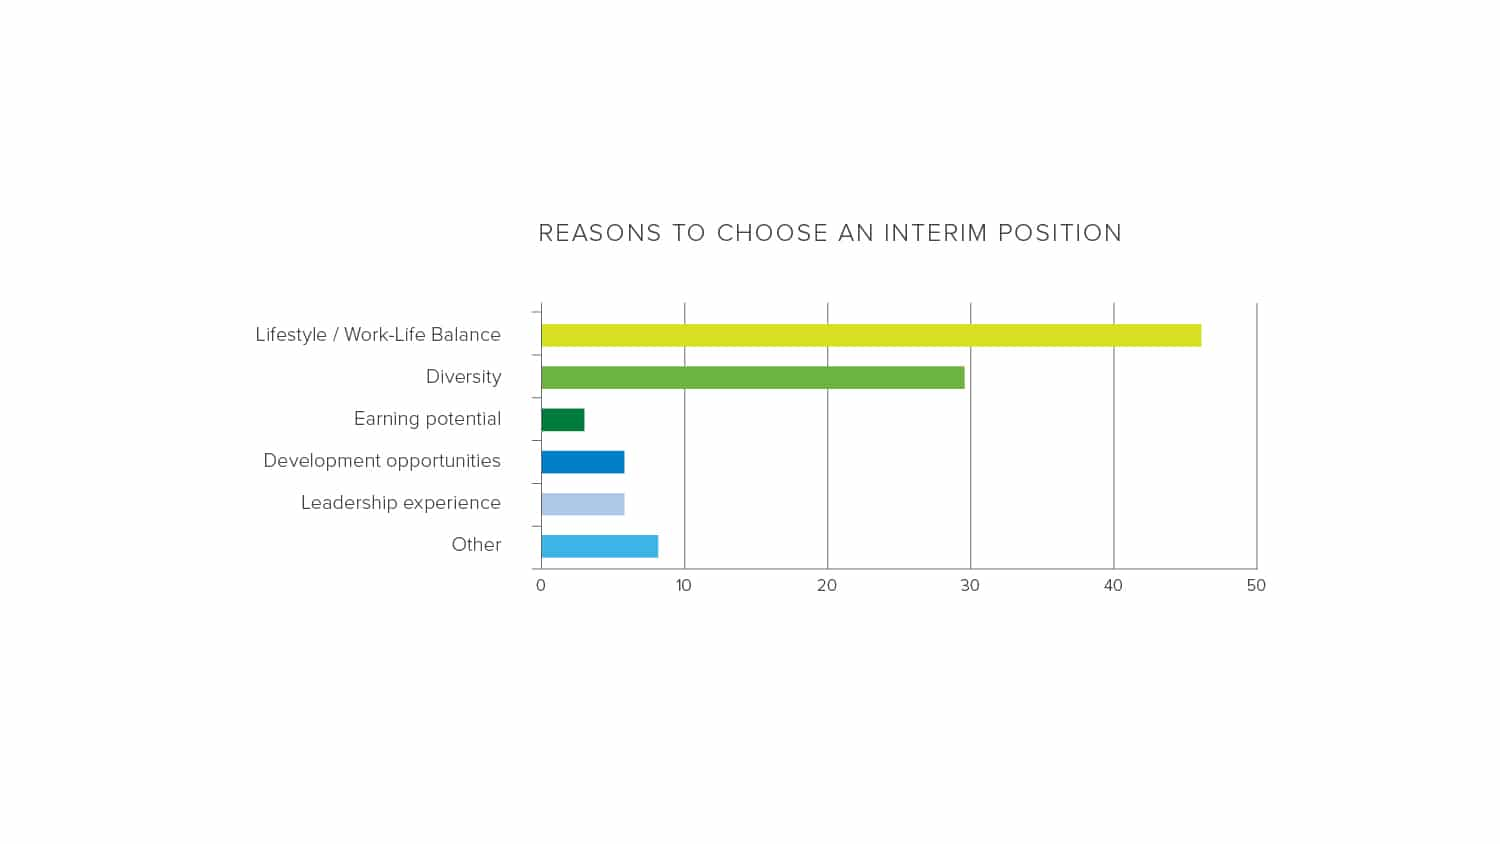 Reasons to choose an interim position